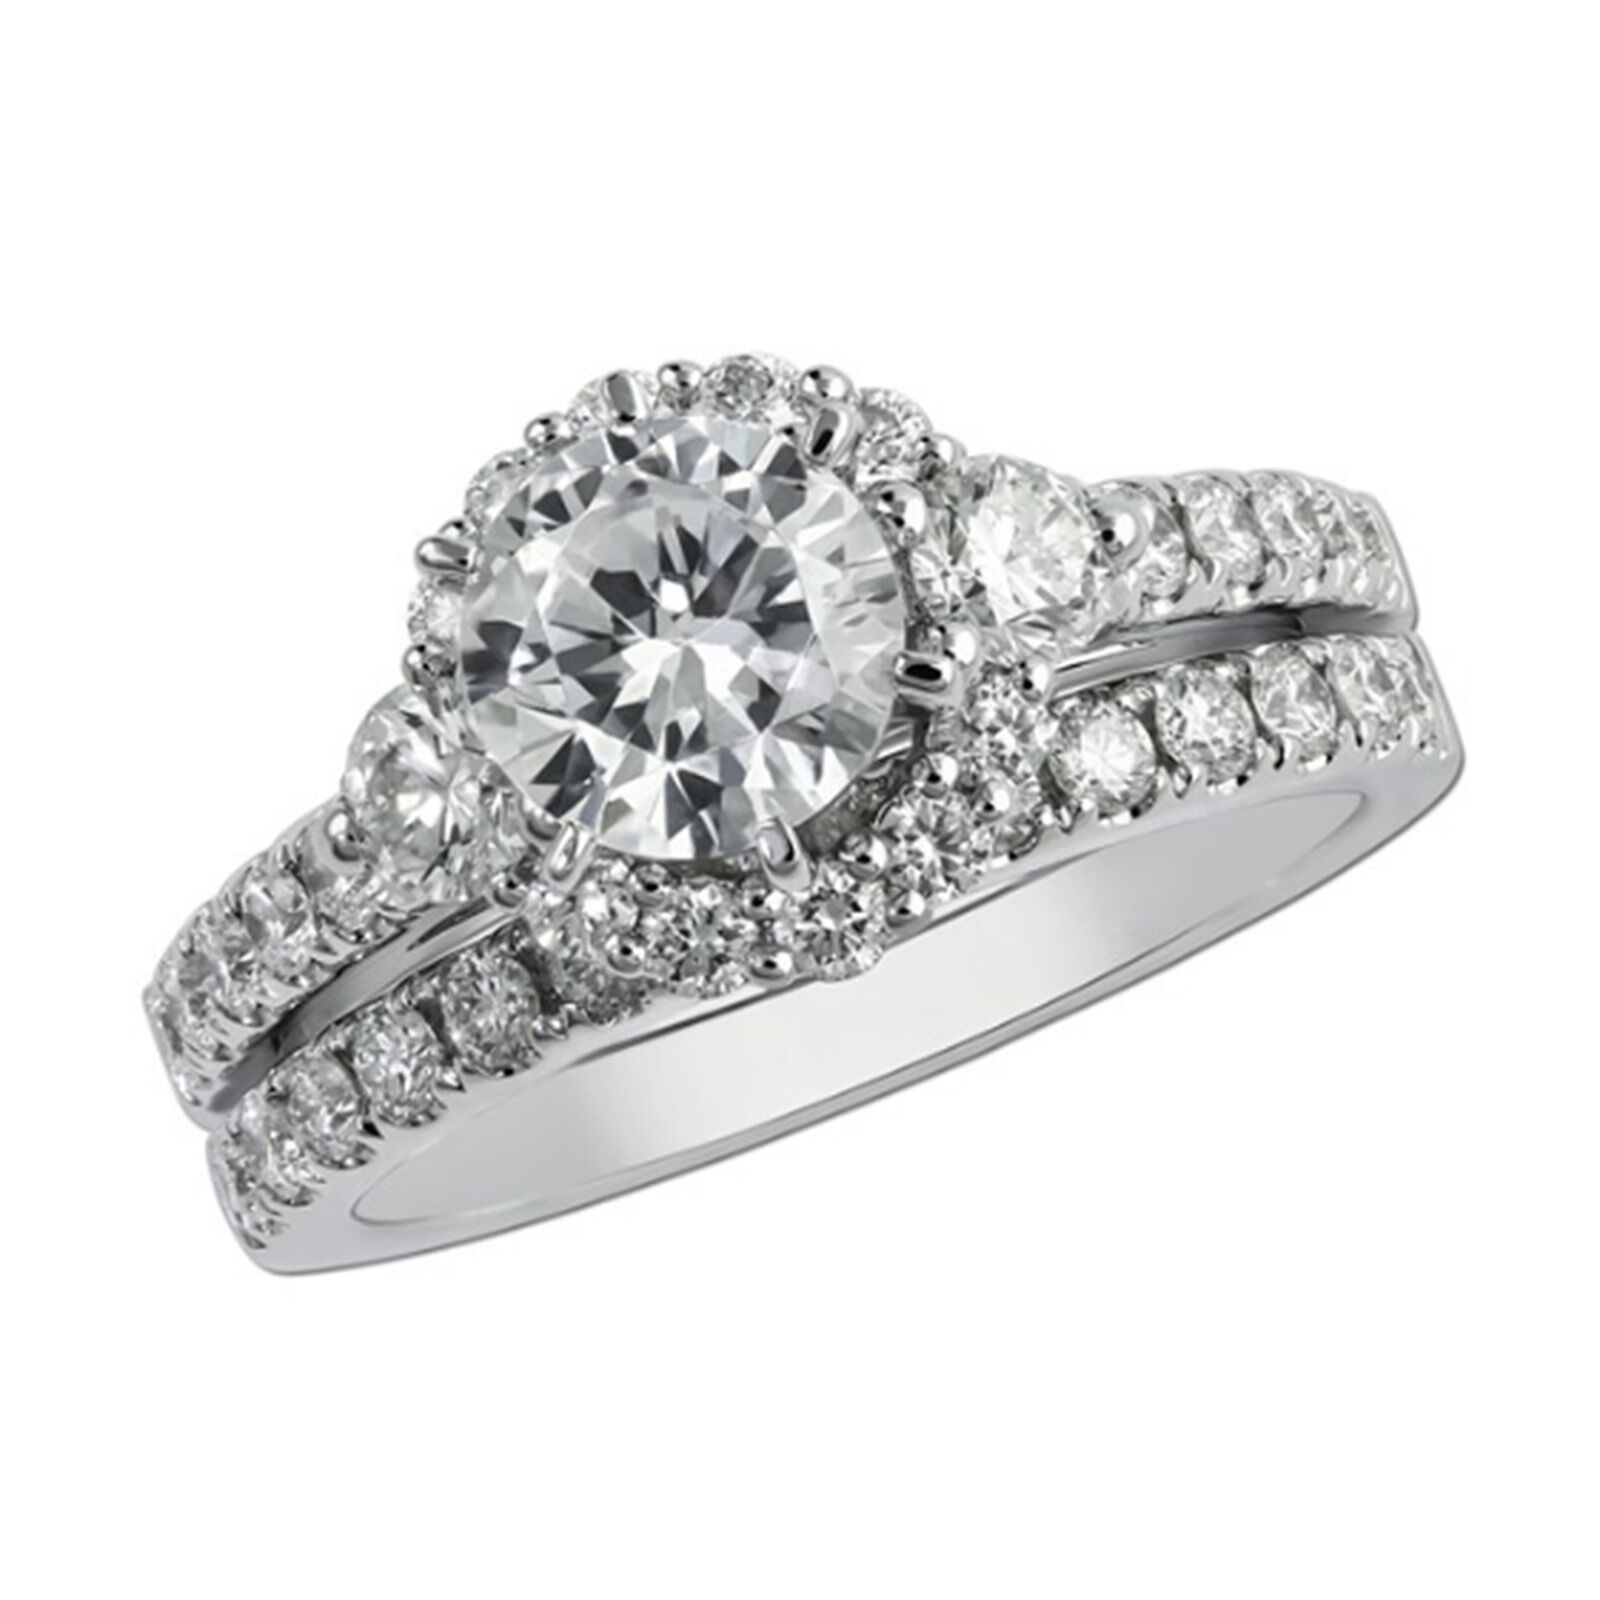 2.00Ct Moissanite Diamond Solitaire Engagement Ring White gold Finish Size 7